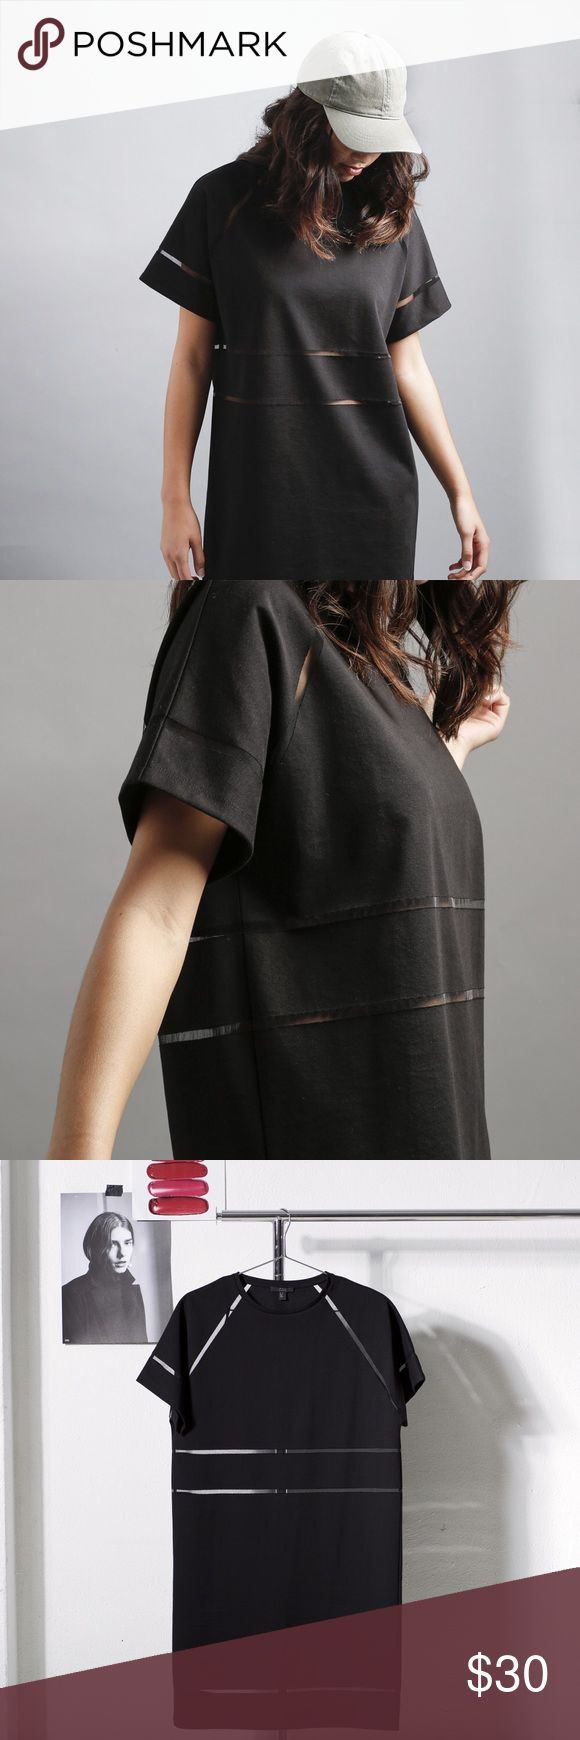 COS Black T-Shirt Dress Wear this black COS T-Shirt dress with mesh cut outs all year around! Dress this look up or down & look cool either way! Hope you love it as much as we do! -xo COS Dresses